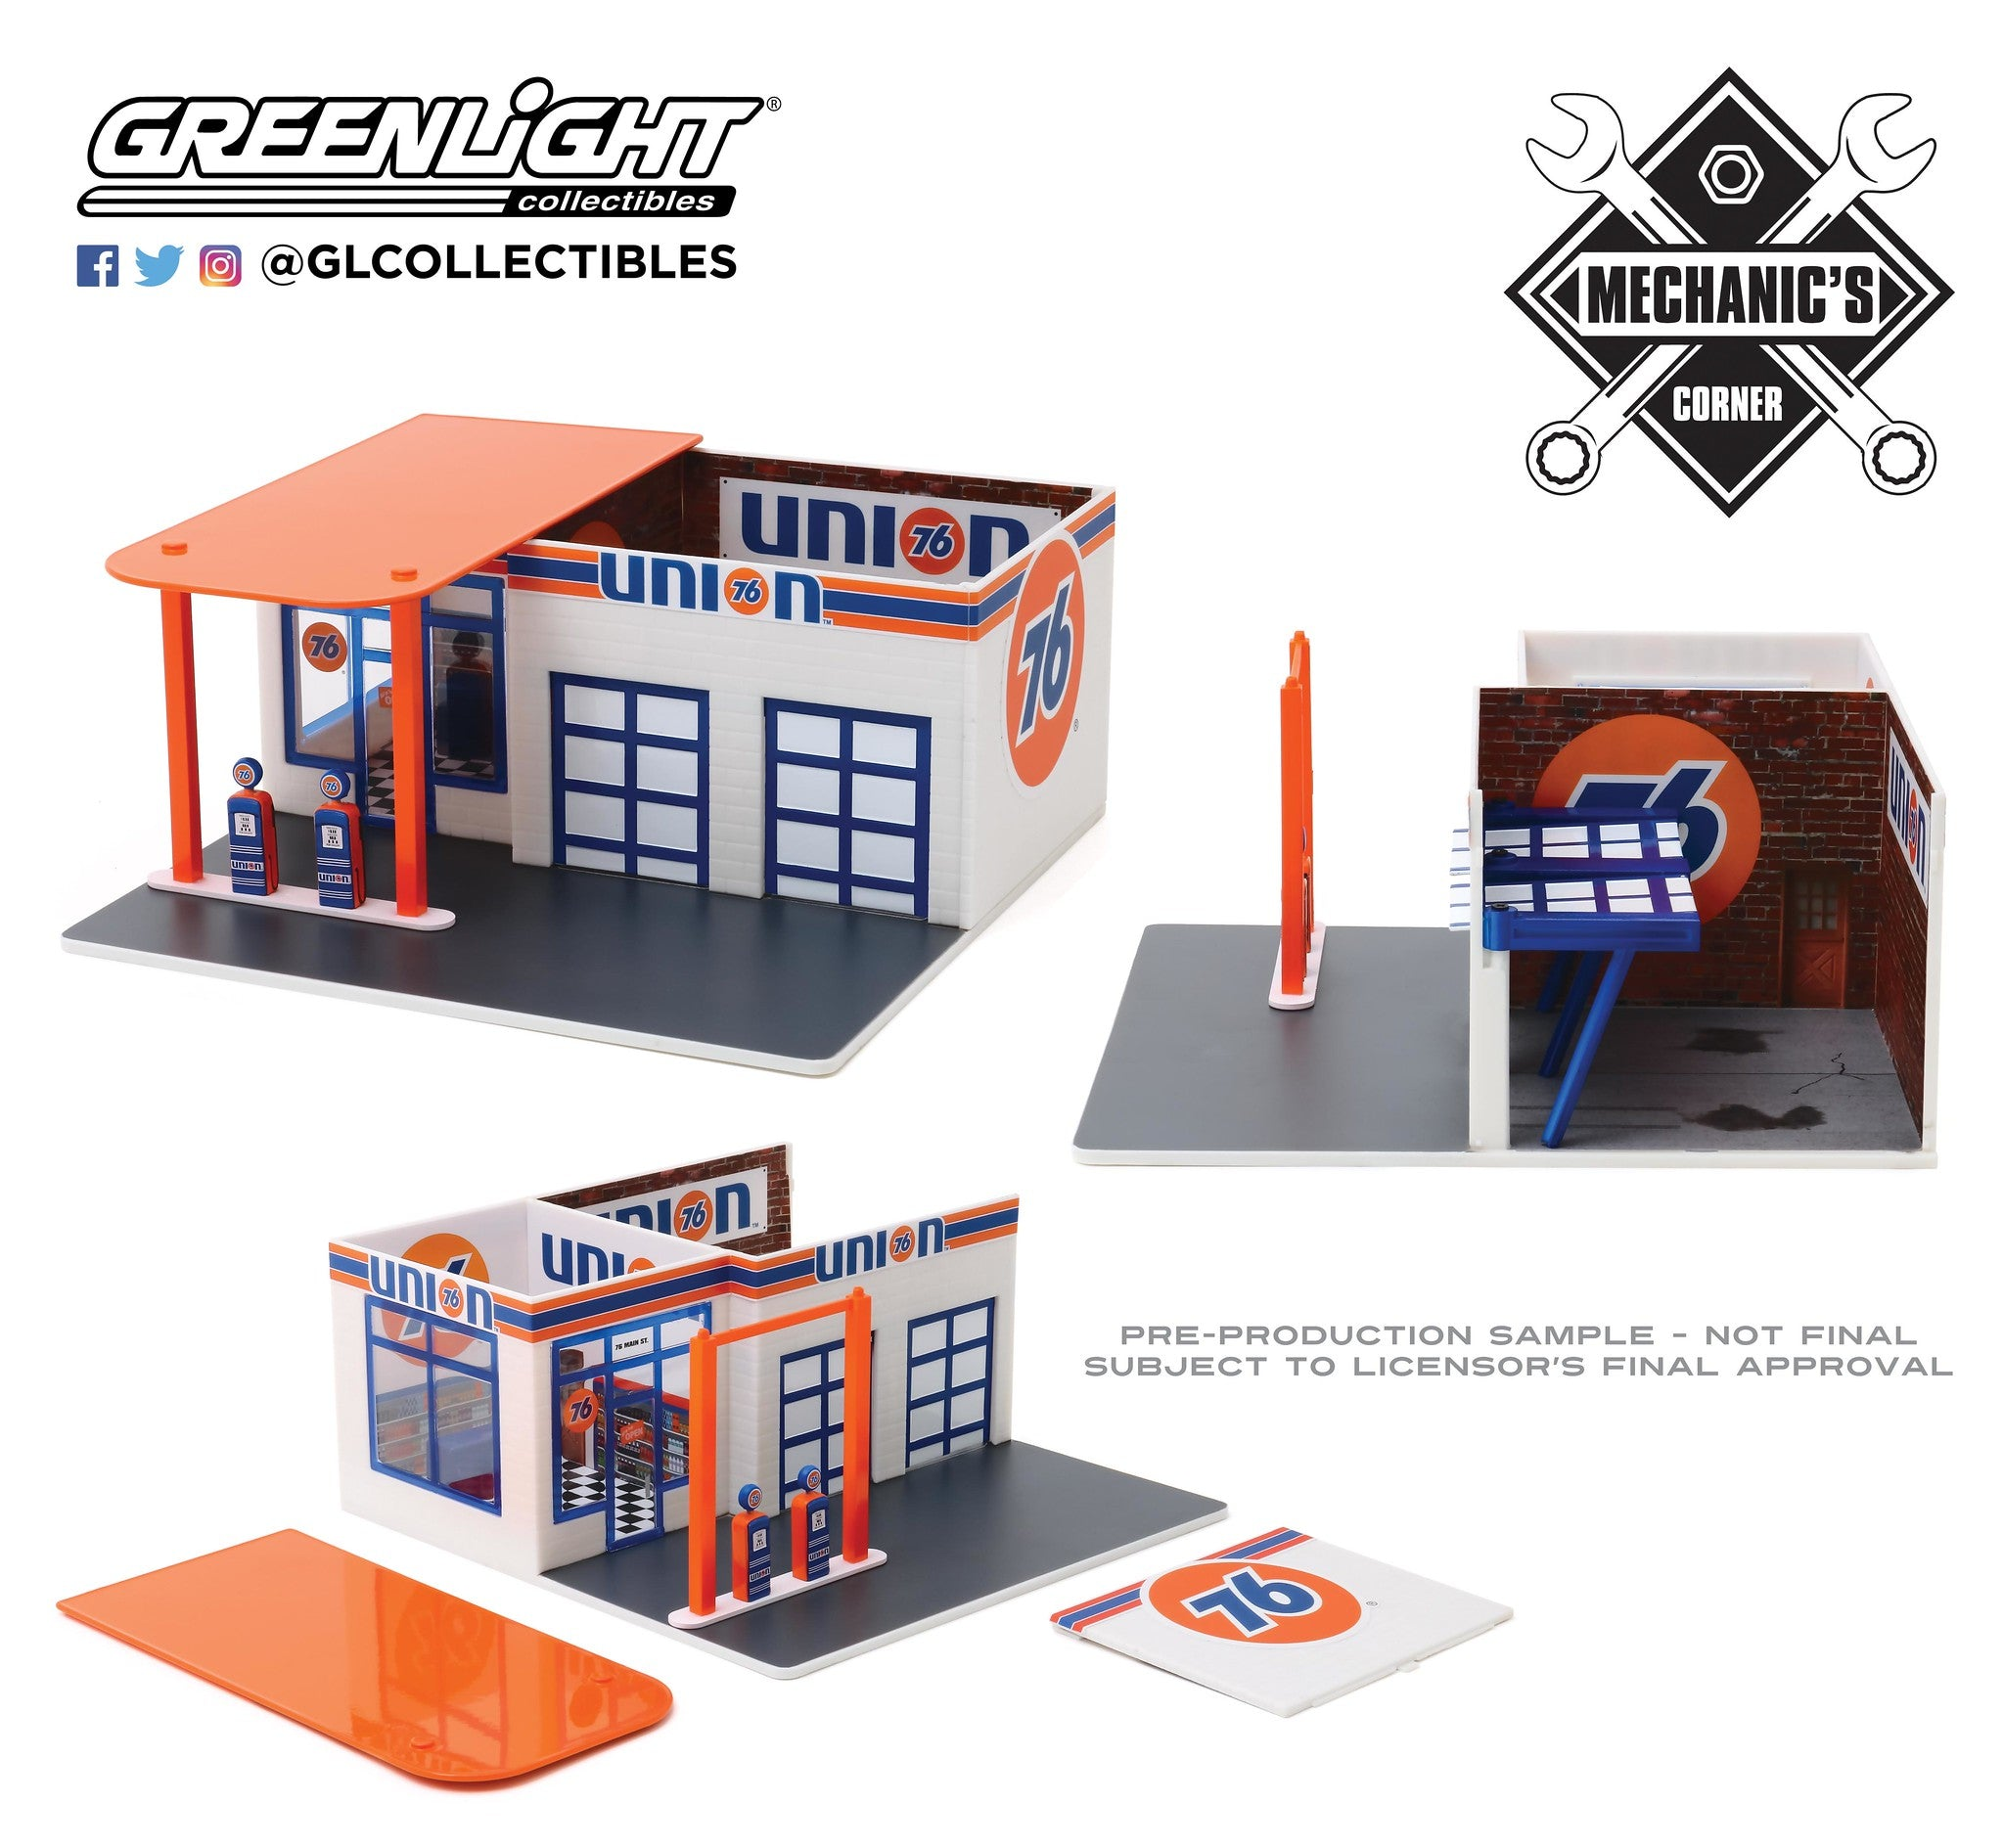 GreenLight 1:64 Mechanic s Corner Series 6 - Vintage Gas Station Union 76 Service Station 57062